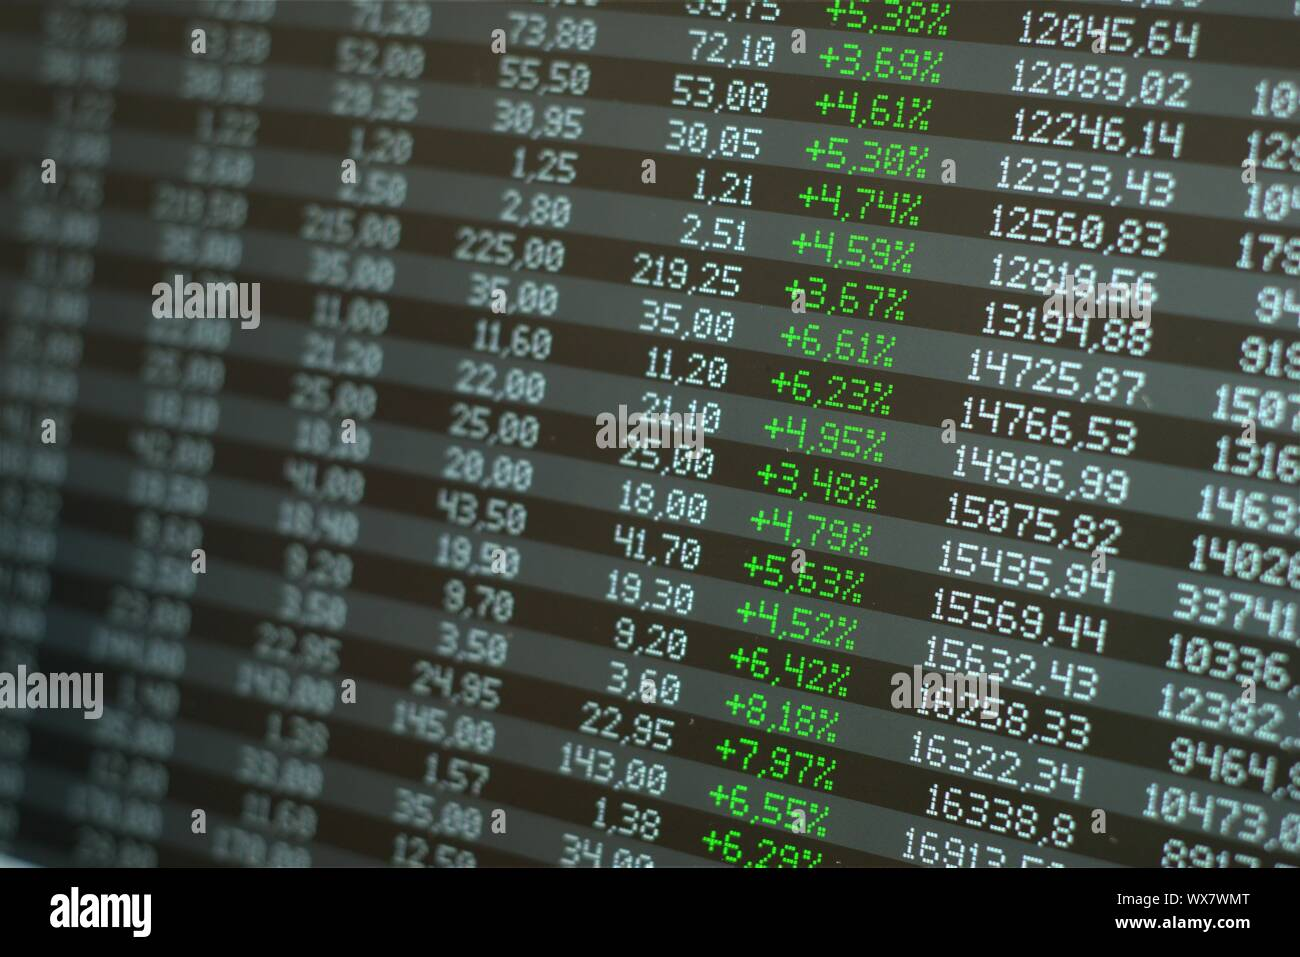 Stock market boom, skyrocketing prices. Green nombres across the board. Financial gains, profit concept. Stock Photo